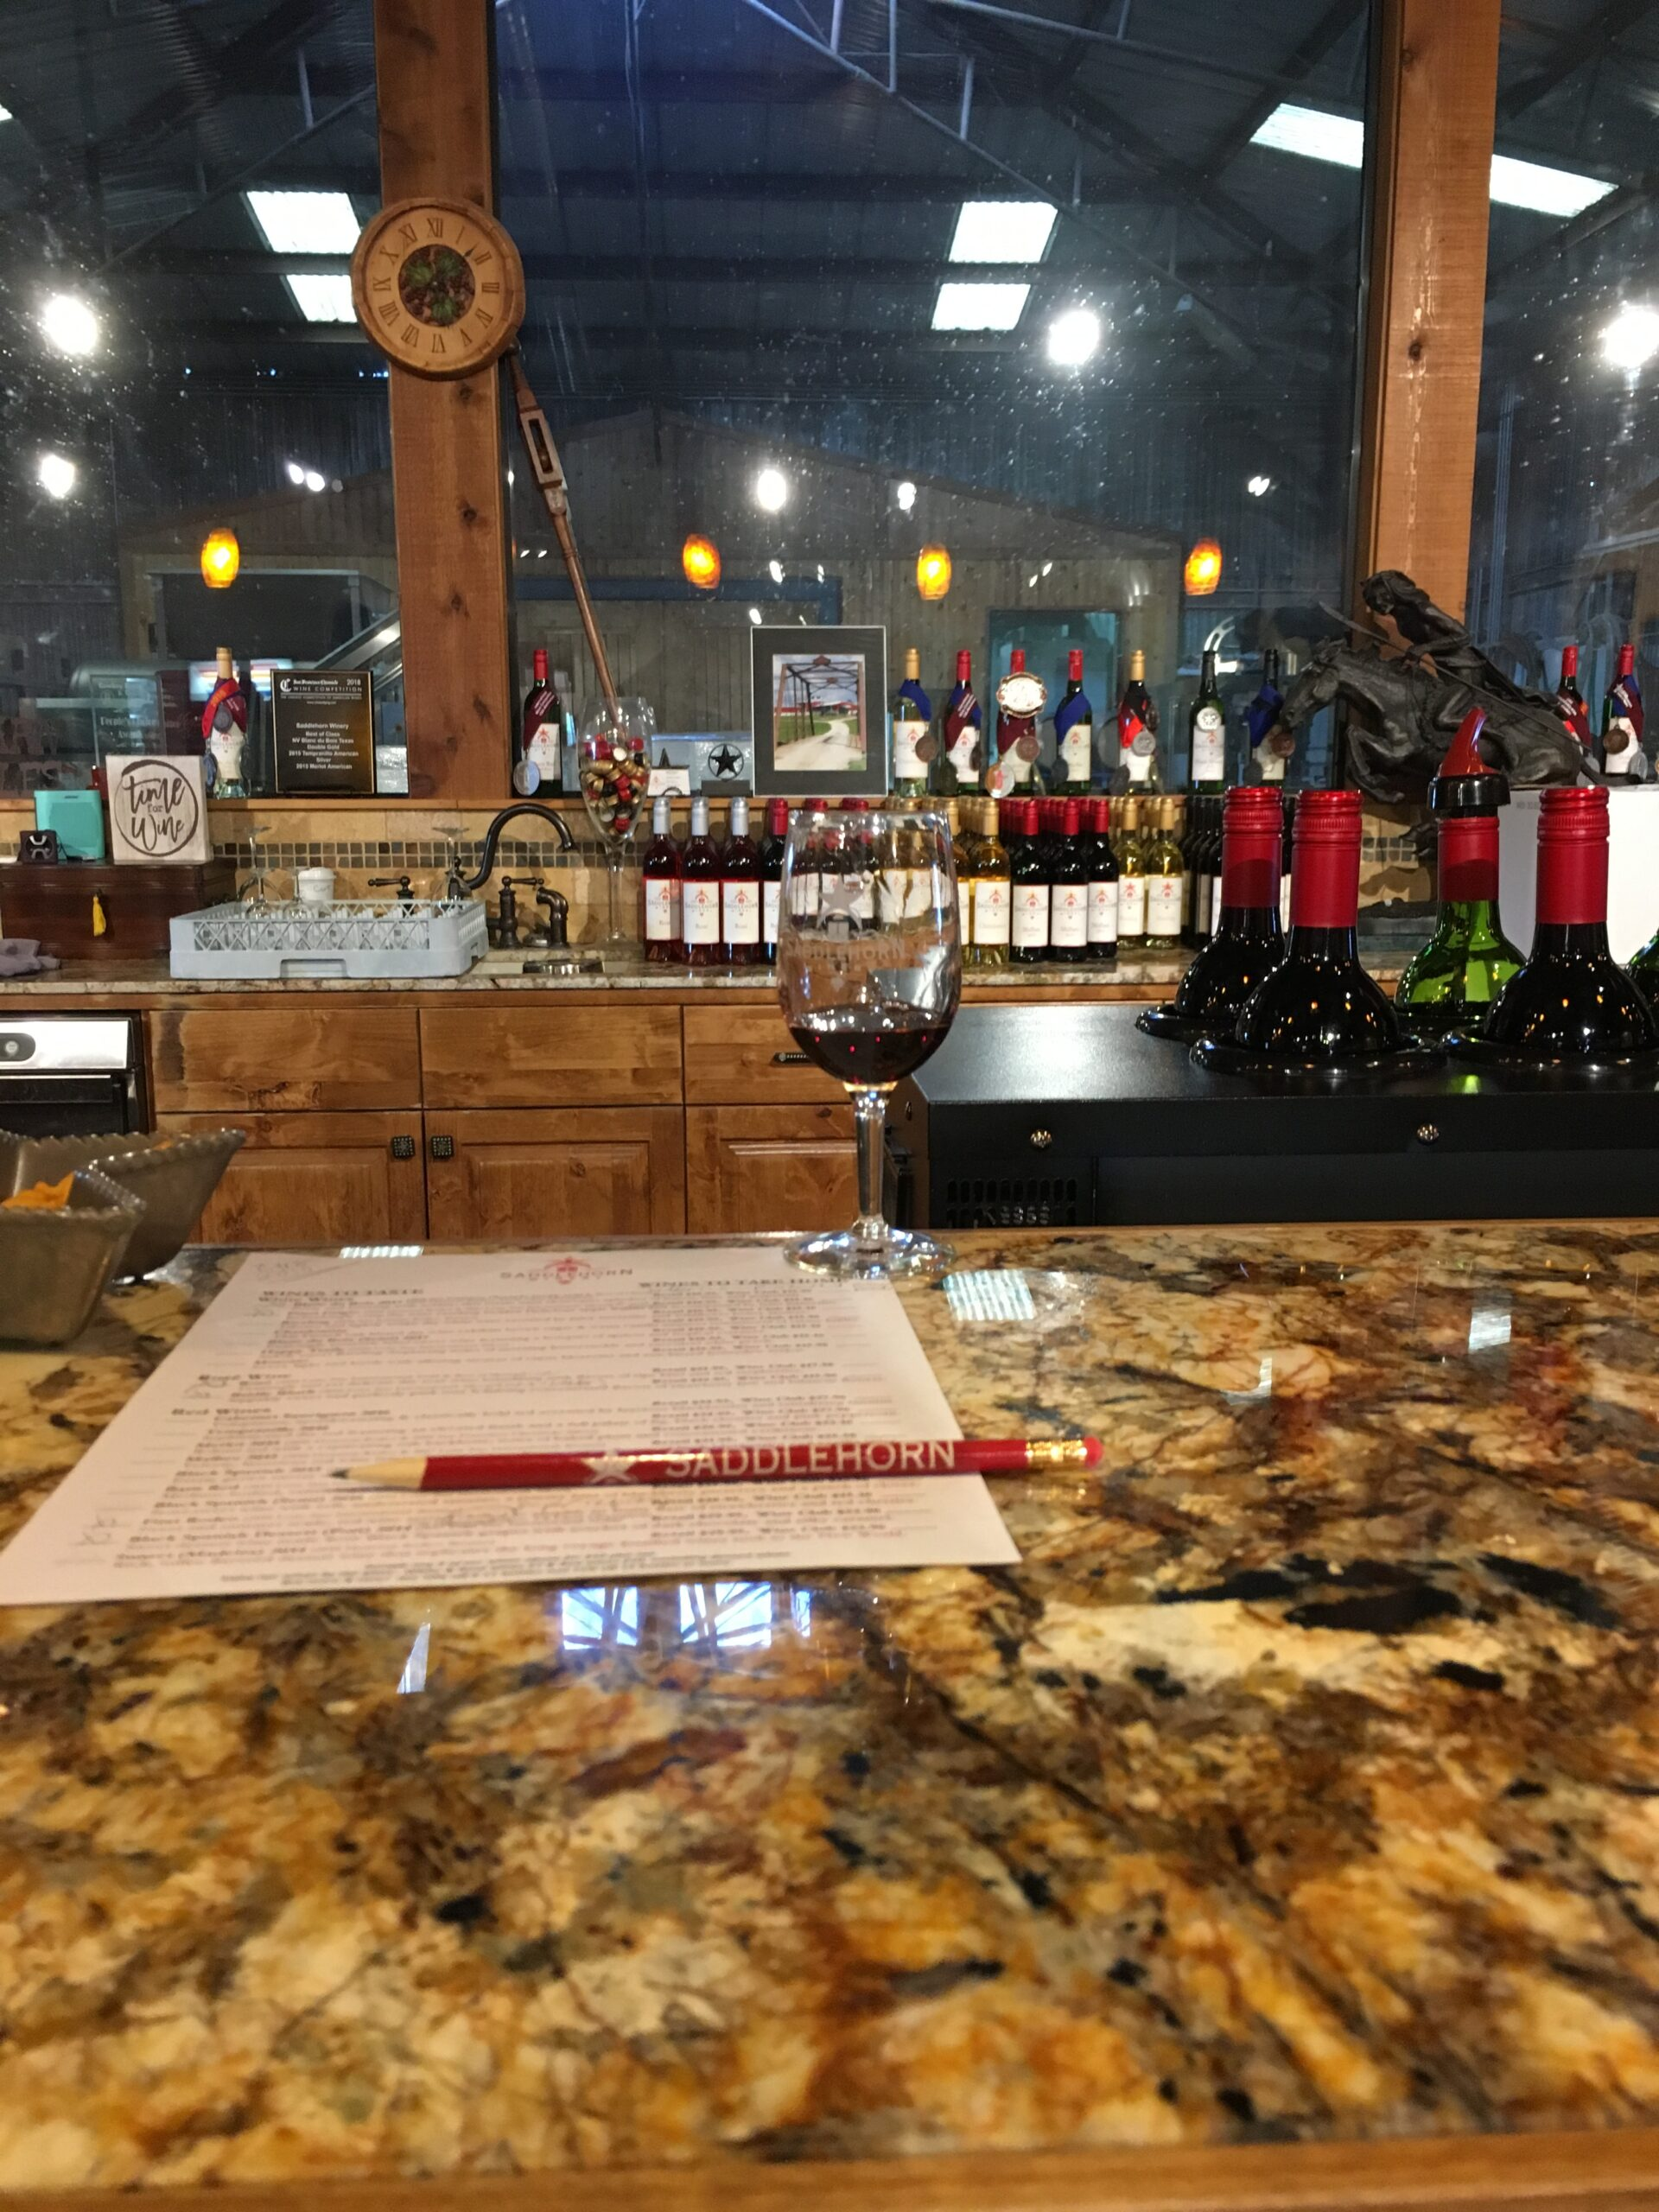 wine glass pencil and wine tasting form on wine tasting counter at saddlehorn winery in burton texas